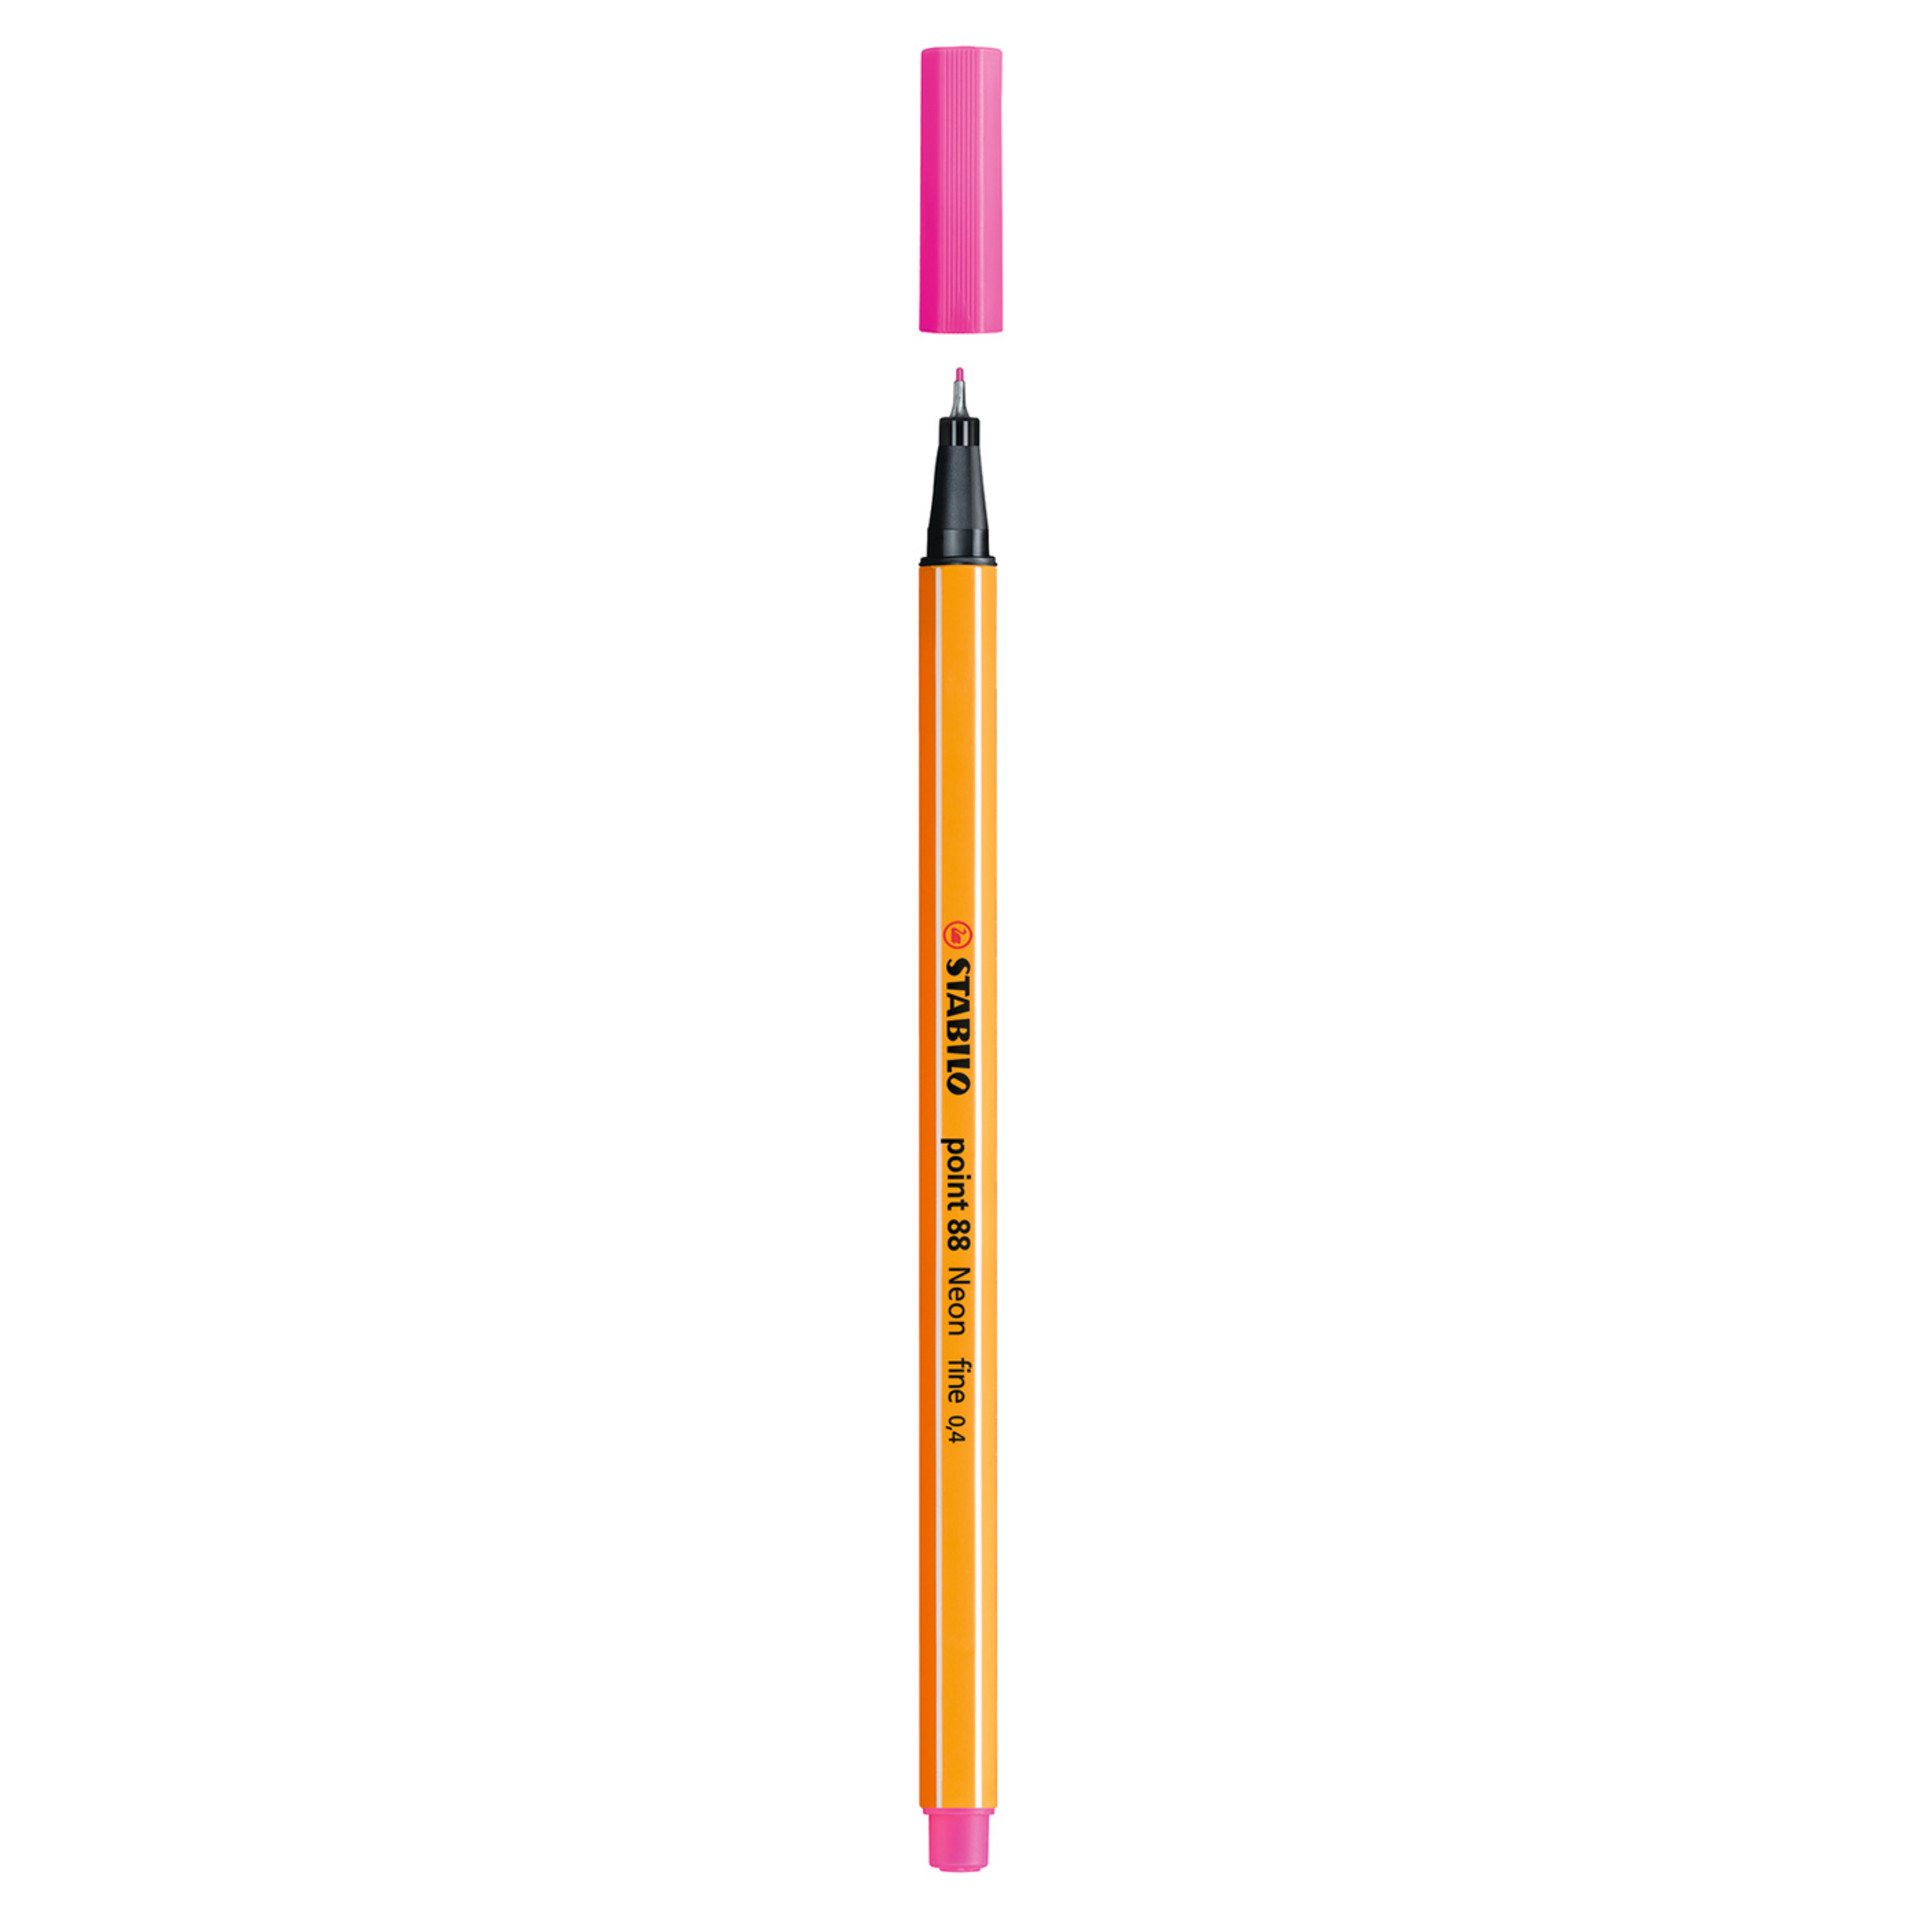 Stabilo Point 88 .4mm Fineliner Pen – Neon Pink